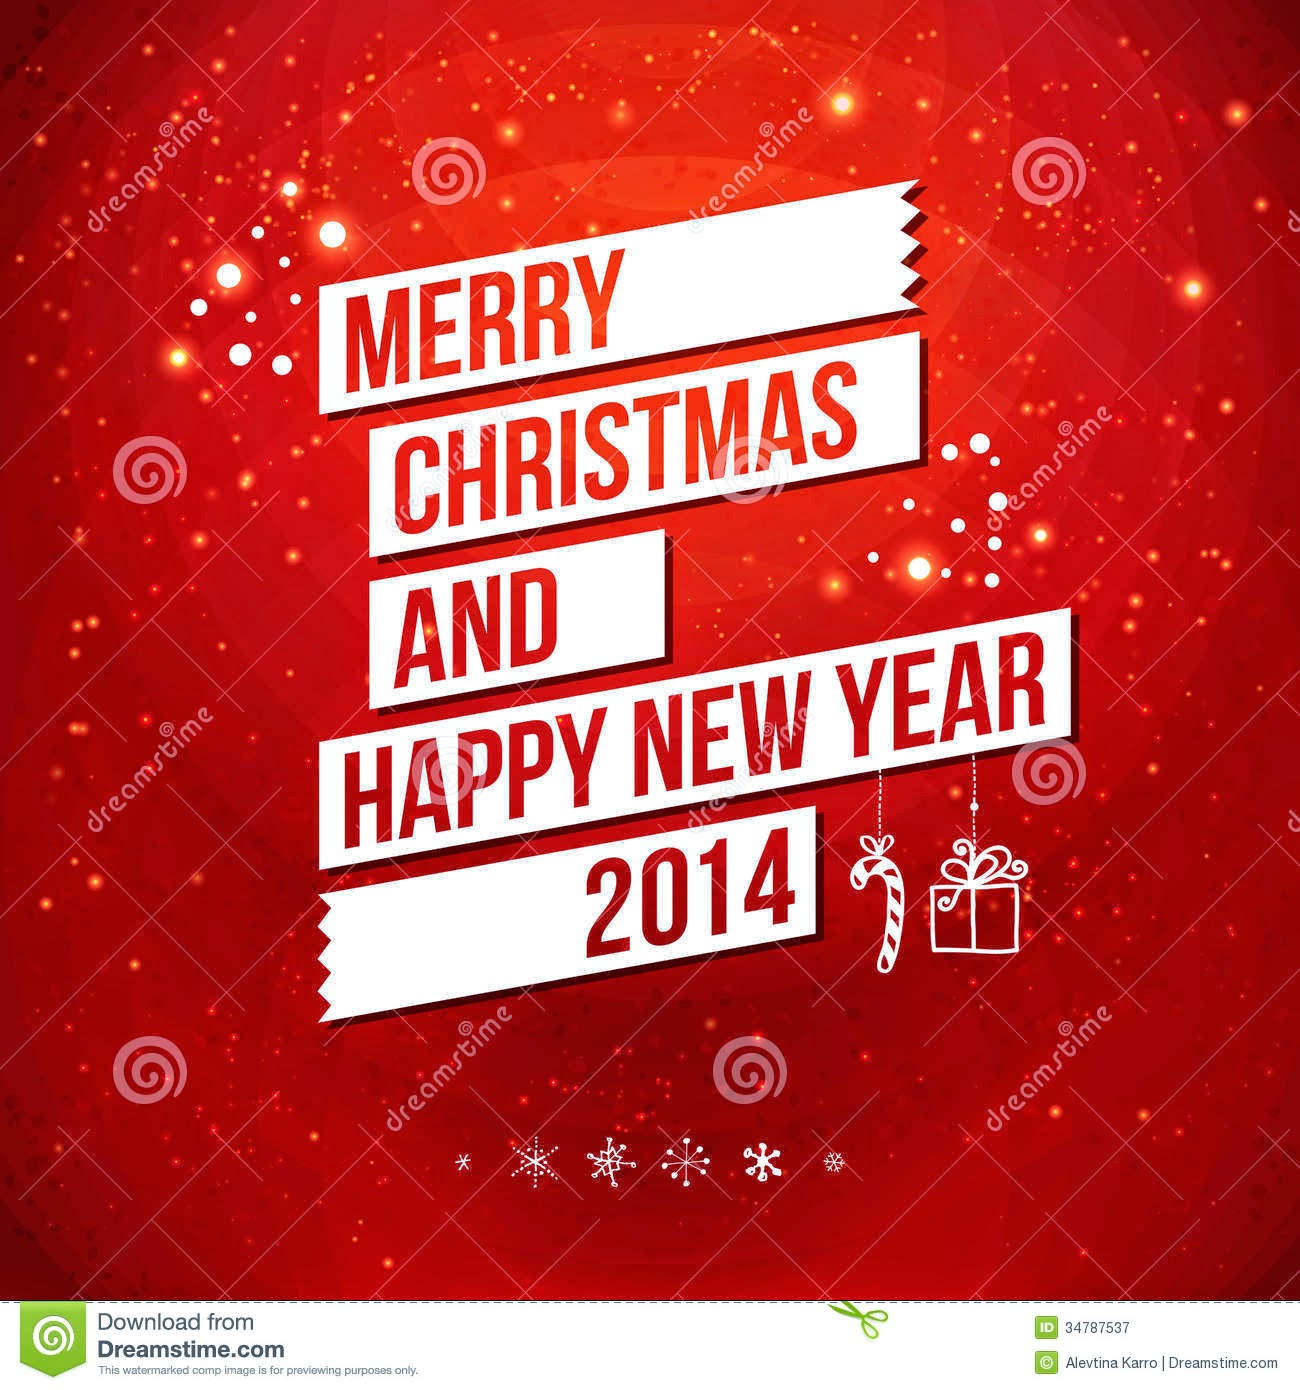 Merry Christmas Greeting Cards 2014